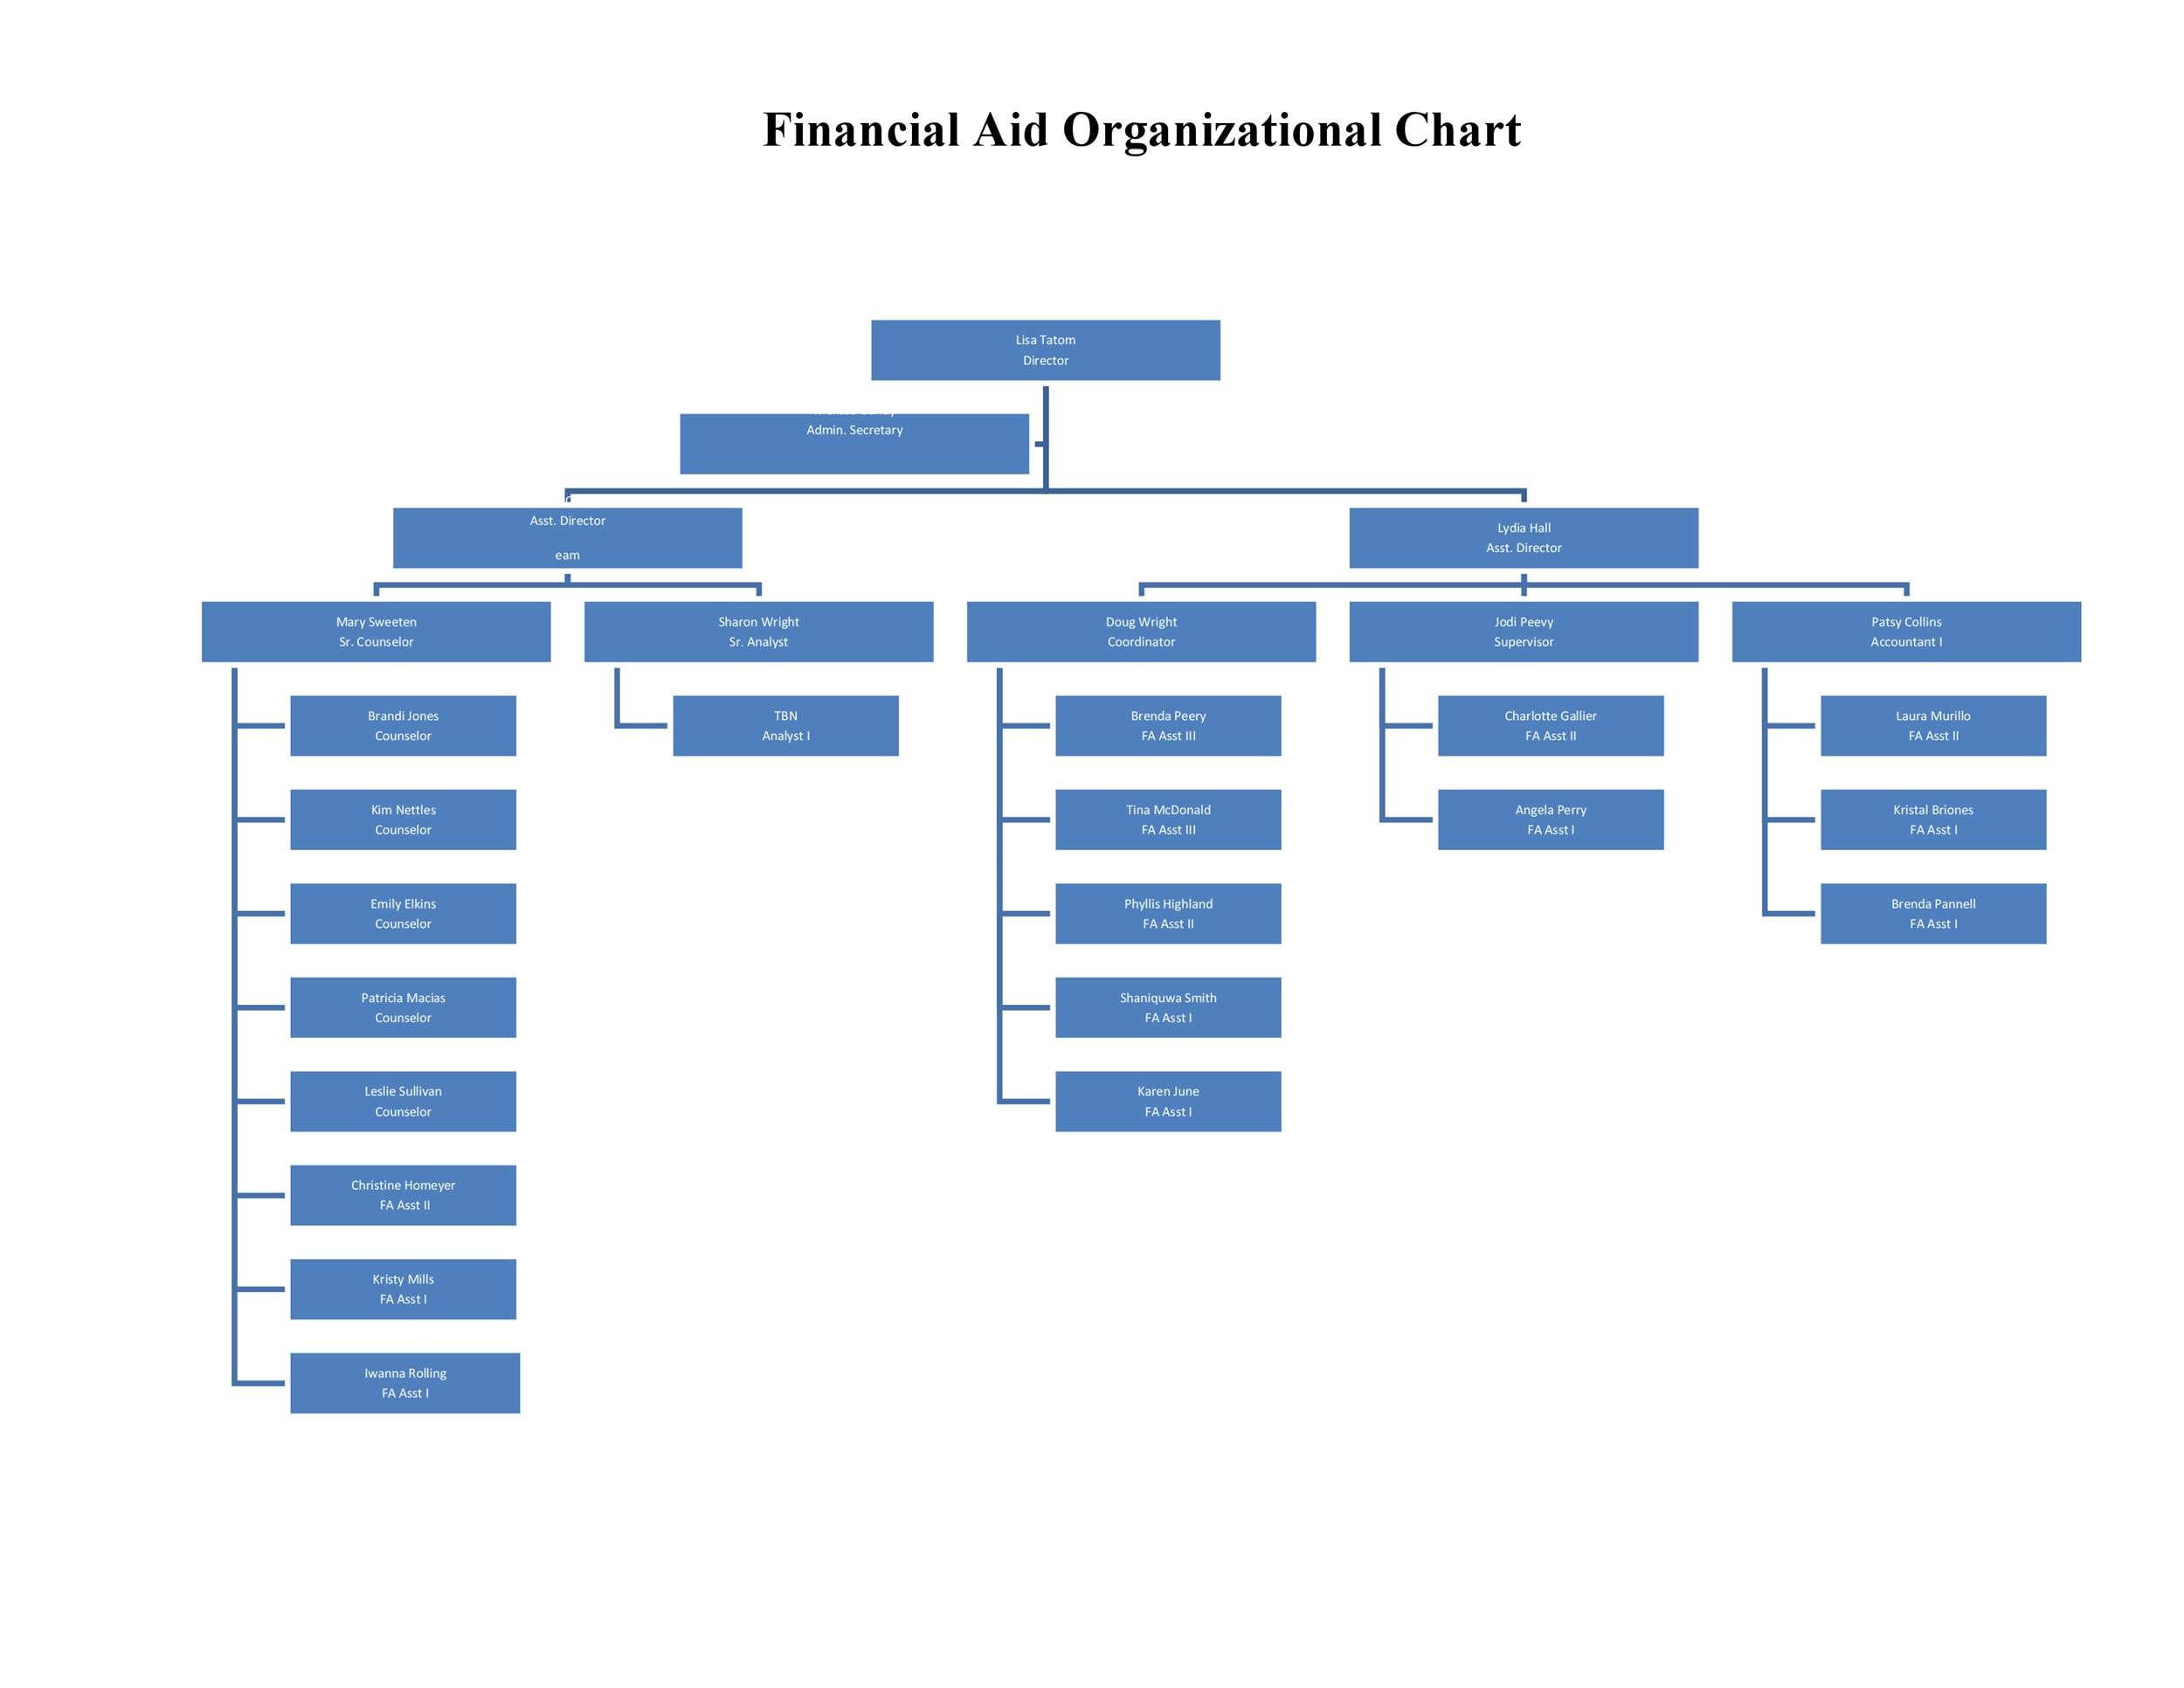 Organizational Chart Templates Word Excel PowerPoint - Free organizational chart template word 2010